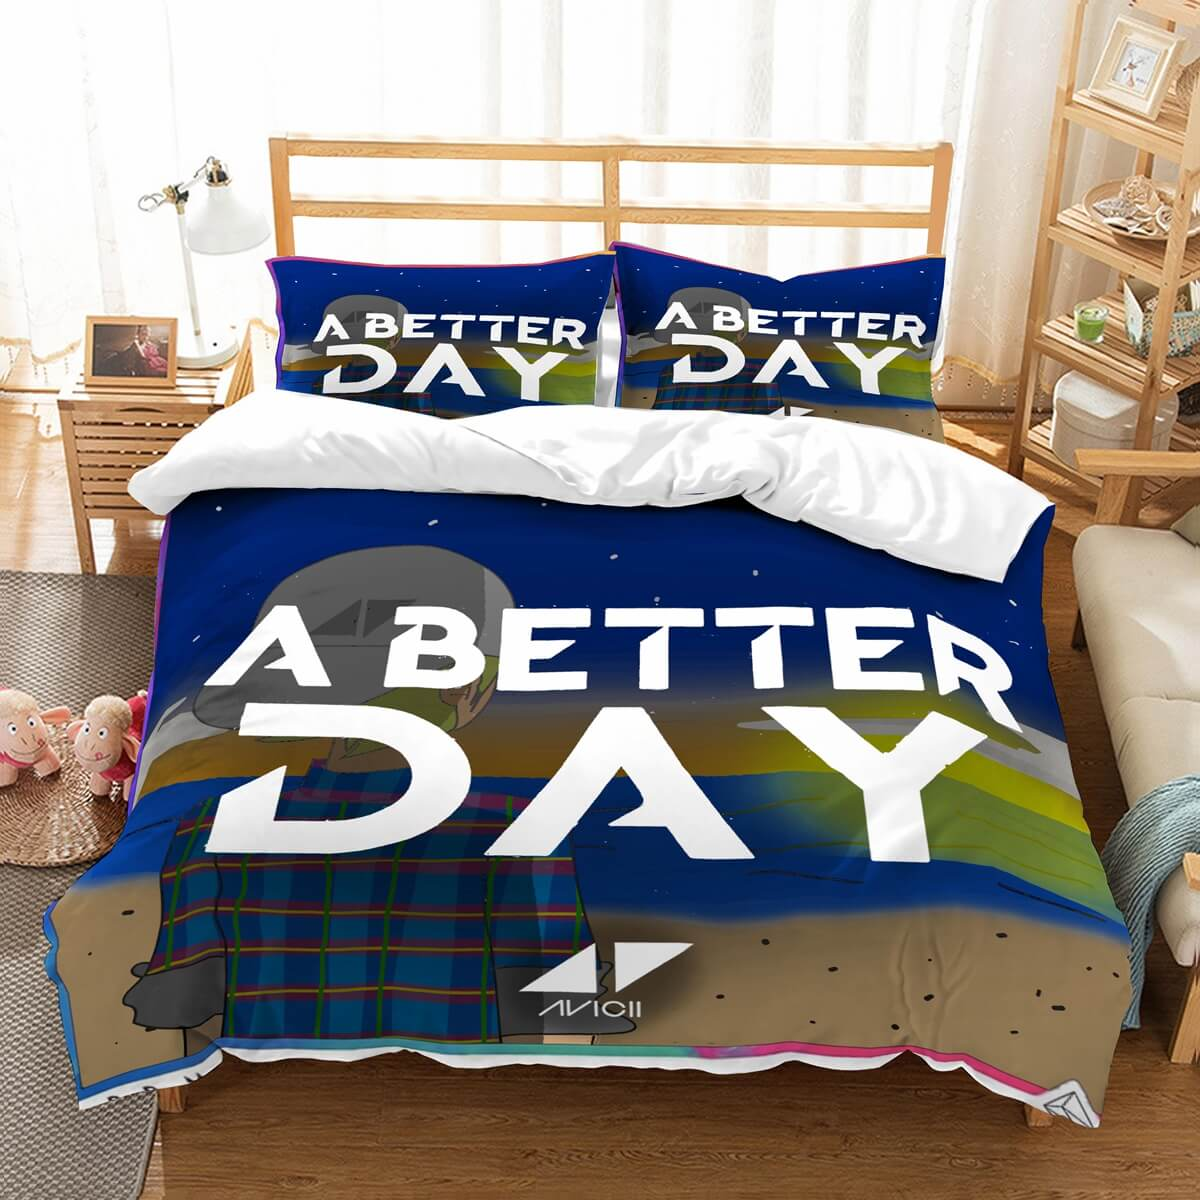 3D Customize Avicii A Better Day Bedding Set Duvet Cover Set Bedroom Set Bedlinen